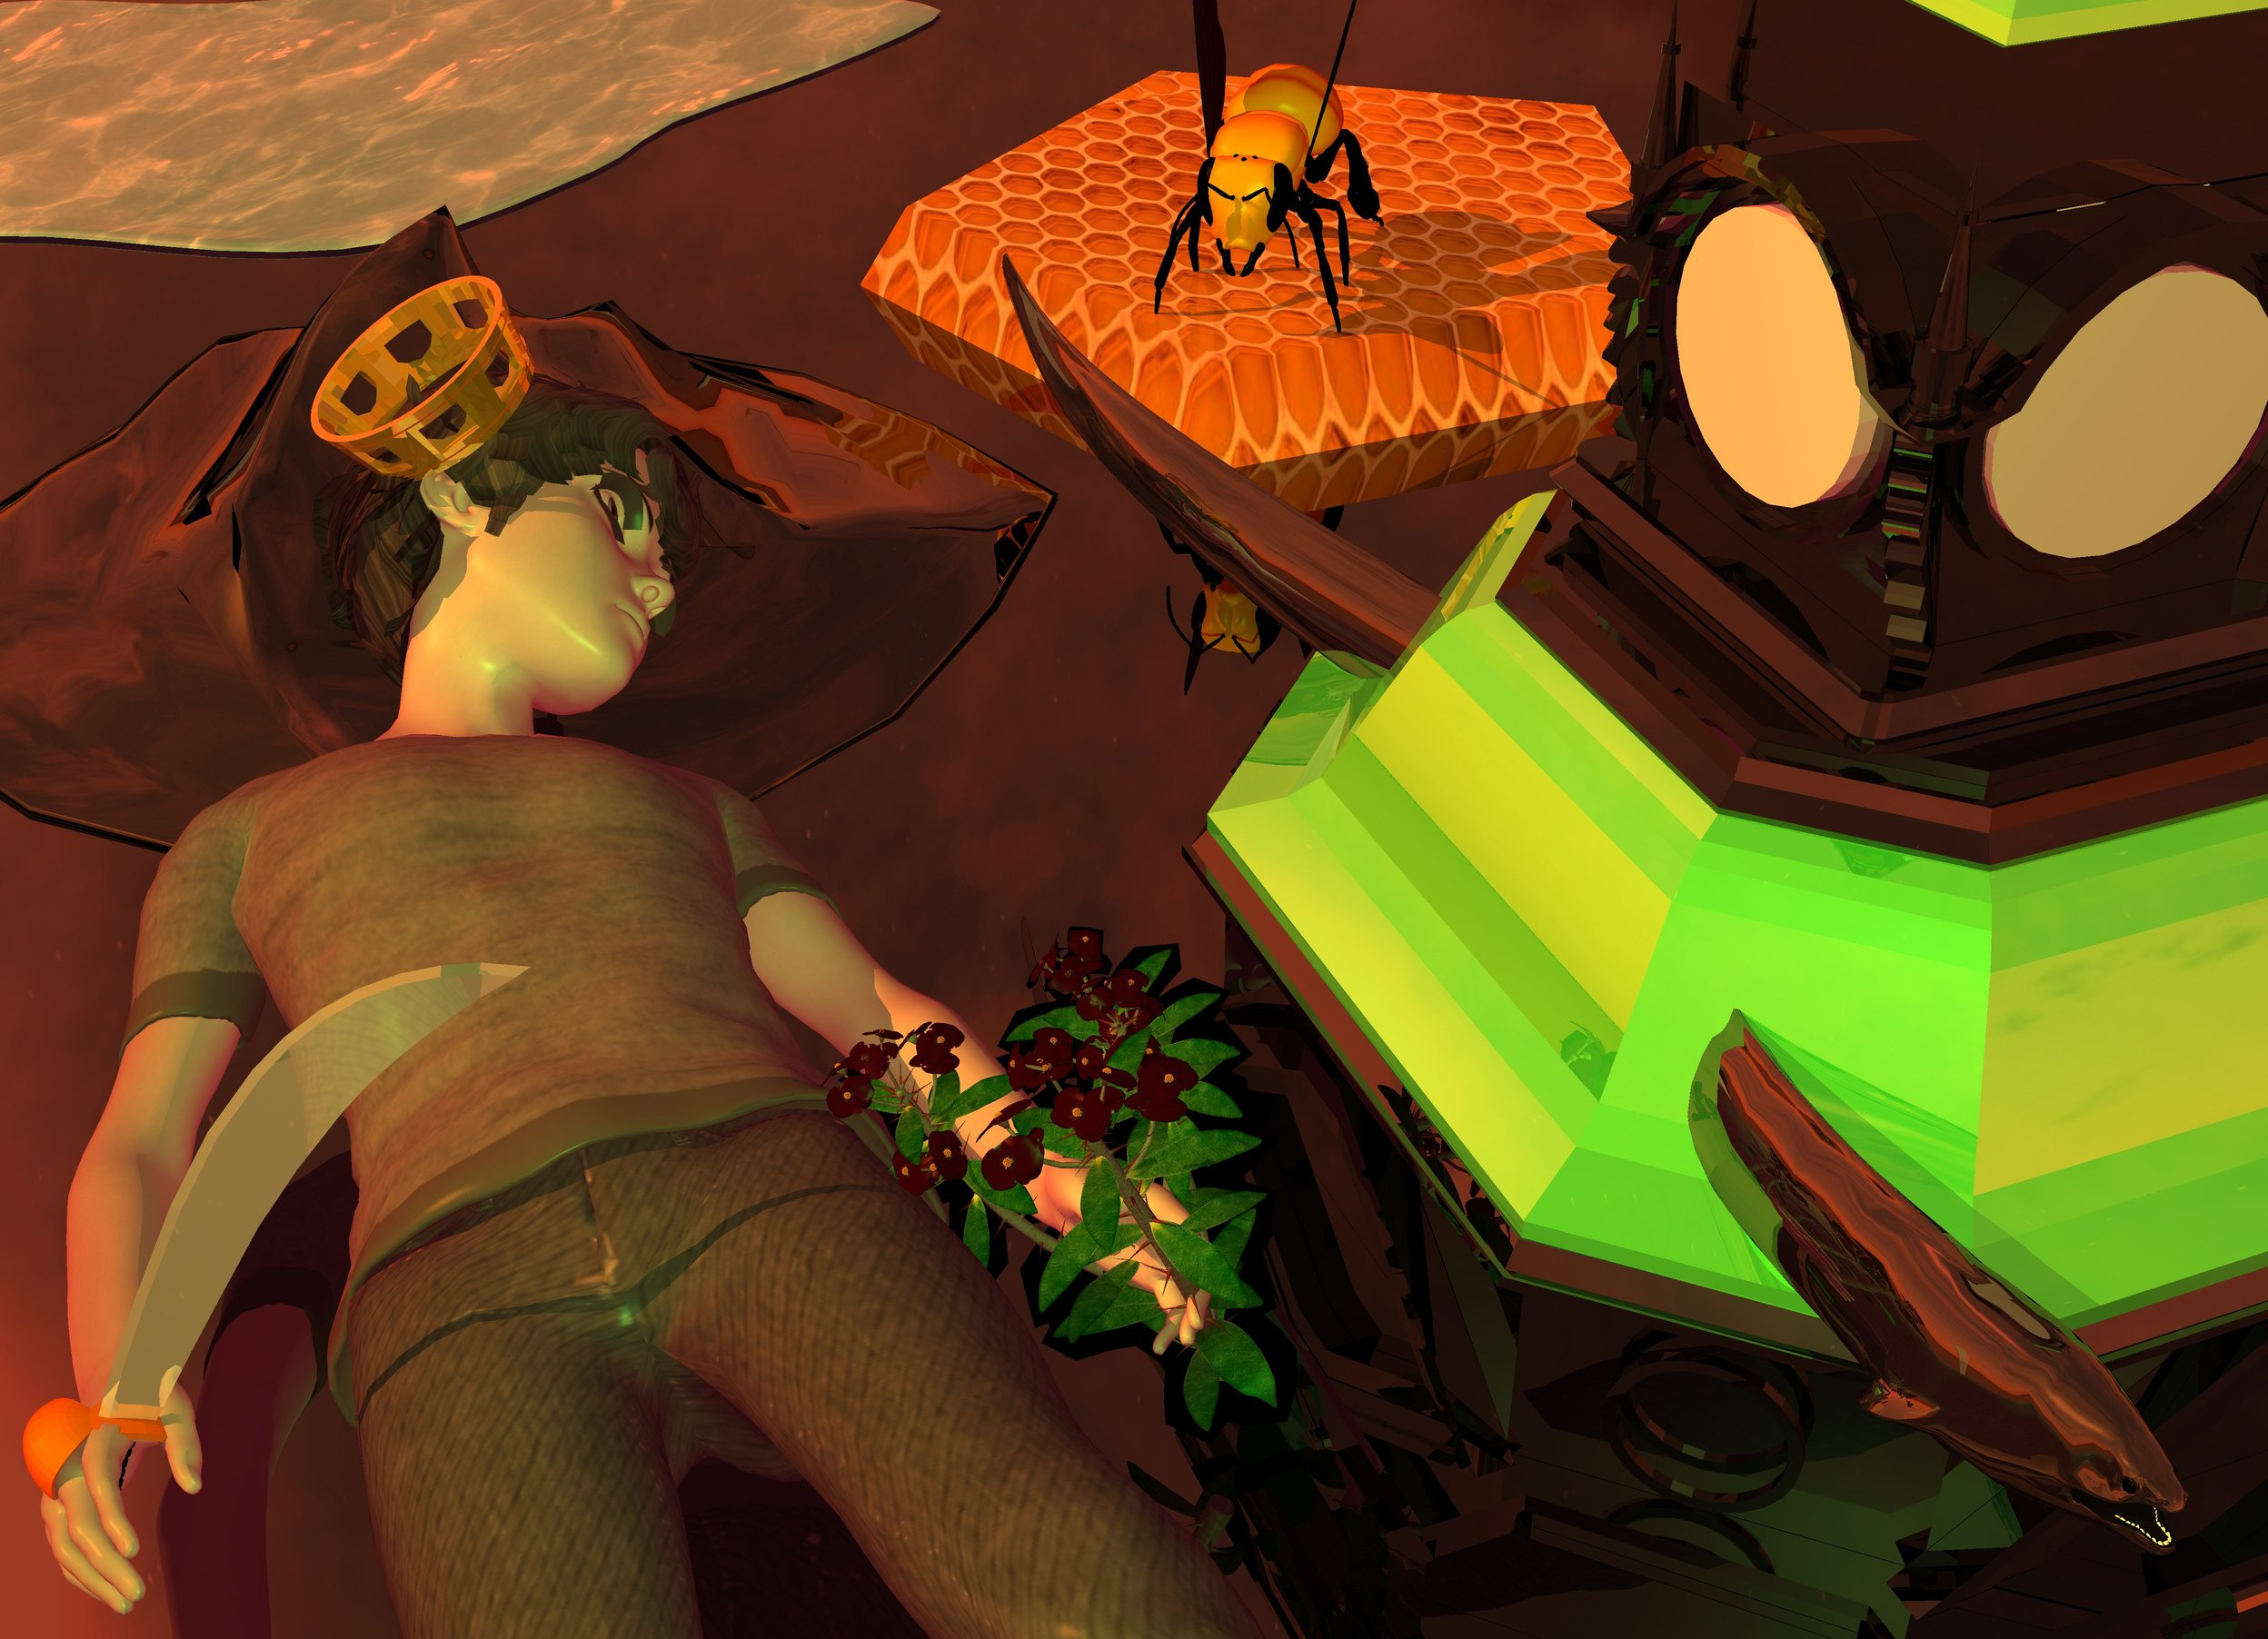 Input text: pale human is facing up. ambient light is dusty rose. sun is old gold. camera light is lime green. ground is black and shiny. 5 foot long shiny black structure is right of human. structure is 2 foot in ground. structure's roof is shiny lime green. pale shiny  fish is -0.6 foot left of structure's roof and -3.8 foot to front. dark flower is -2 foot left of human and -3 foot to back. flower is leaning 25 degrees to ground. 1 foot tall shiny sword is -0.75 foot left of human and -2.6 foot to back. sword is upside down. sword is leaning -40 degrees to east. sword is 5 inch above ground. sword's grip is black. sword's handhold is black.  3 foot wide shiny black wave is 0.5 foot behind structure and -1 foot to left. wave is 0.1 inch in ground. 0.45 foot wide gold crown is -5  inch  above human and -0.6 foot to back. crown is -0.9 foot to right. crown is leaning 30 degrees to right.  big dodecahedron is 0.9 foot behind structure and -2.2 foot to right. dodecahedron is 3 foot in ground. dodecahedron is 3 foot wide pale 10% reflective [honeycomb]. 1 foot long bee is -1 inch above dodecahedron and -2 foot to front.  bee is -2 foot to left. bee is facing human.  3 foot wide lake is 8 inch behind wave. lake is 2 foot wide 25% reflective [water]. lake is facing left.